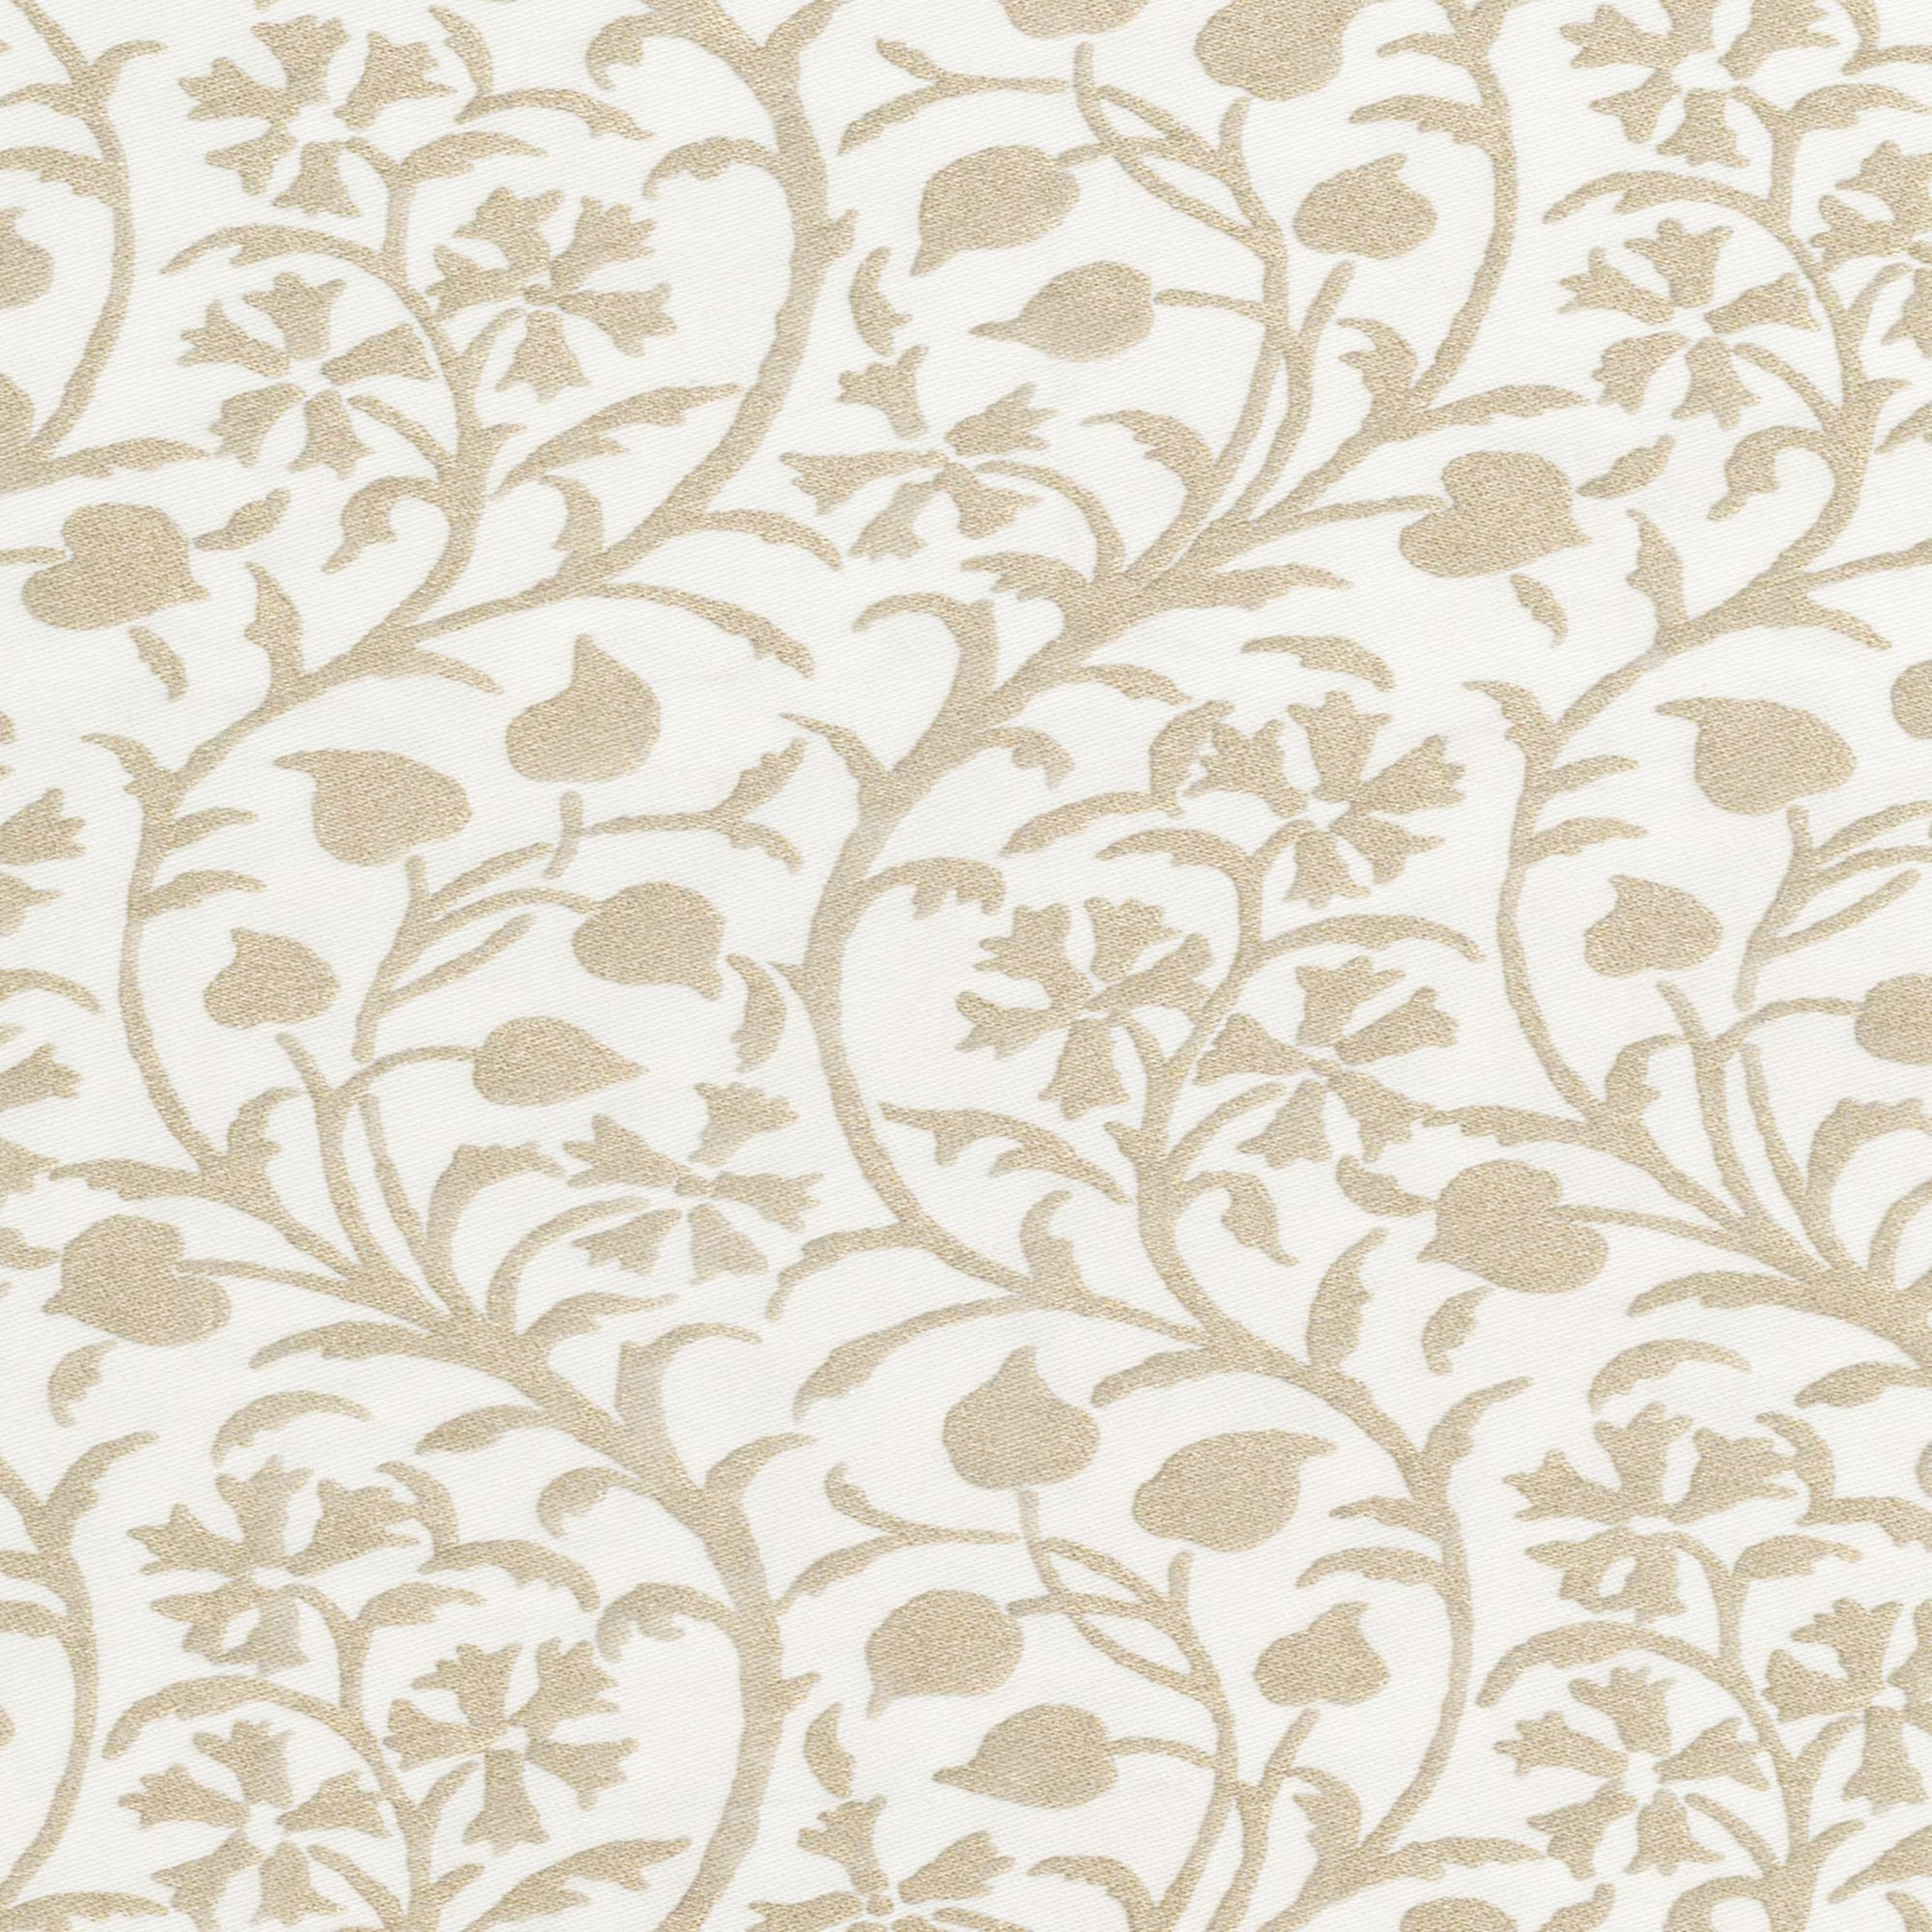 Fortuny Granada in White and Gold by the yard